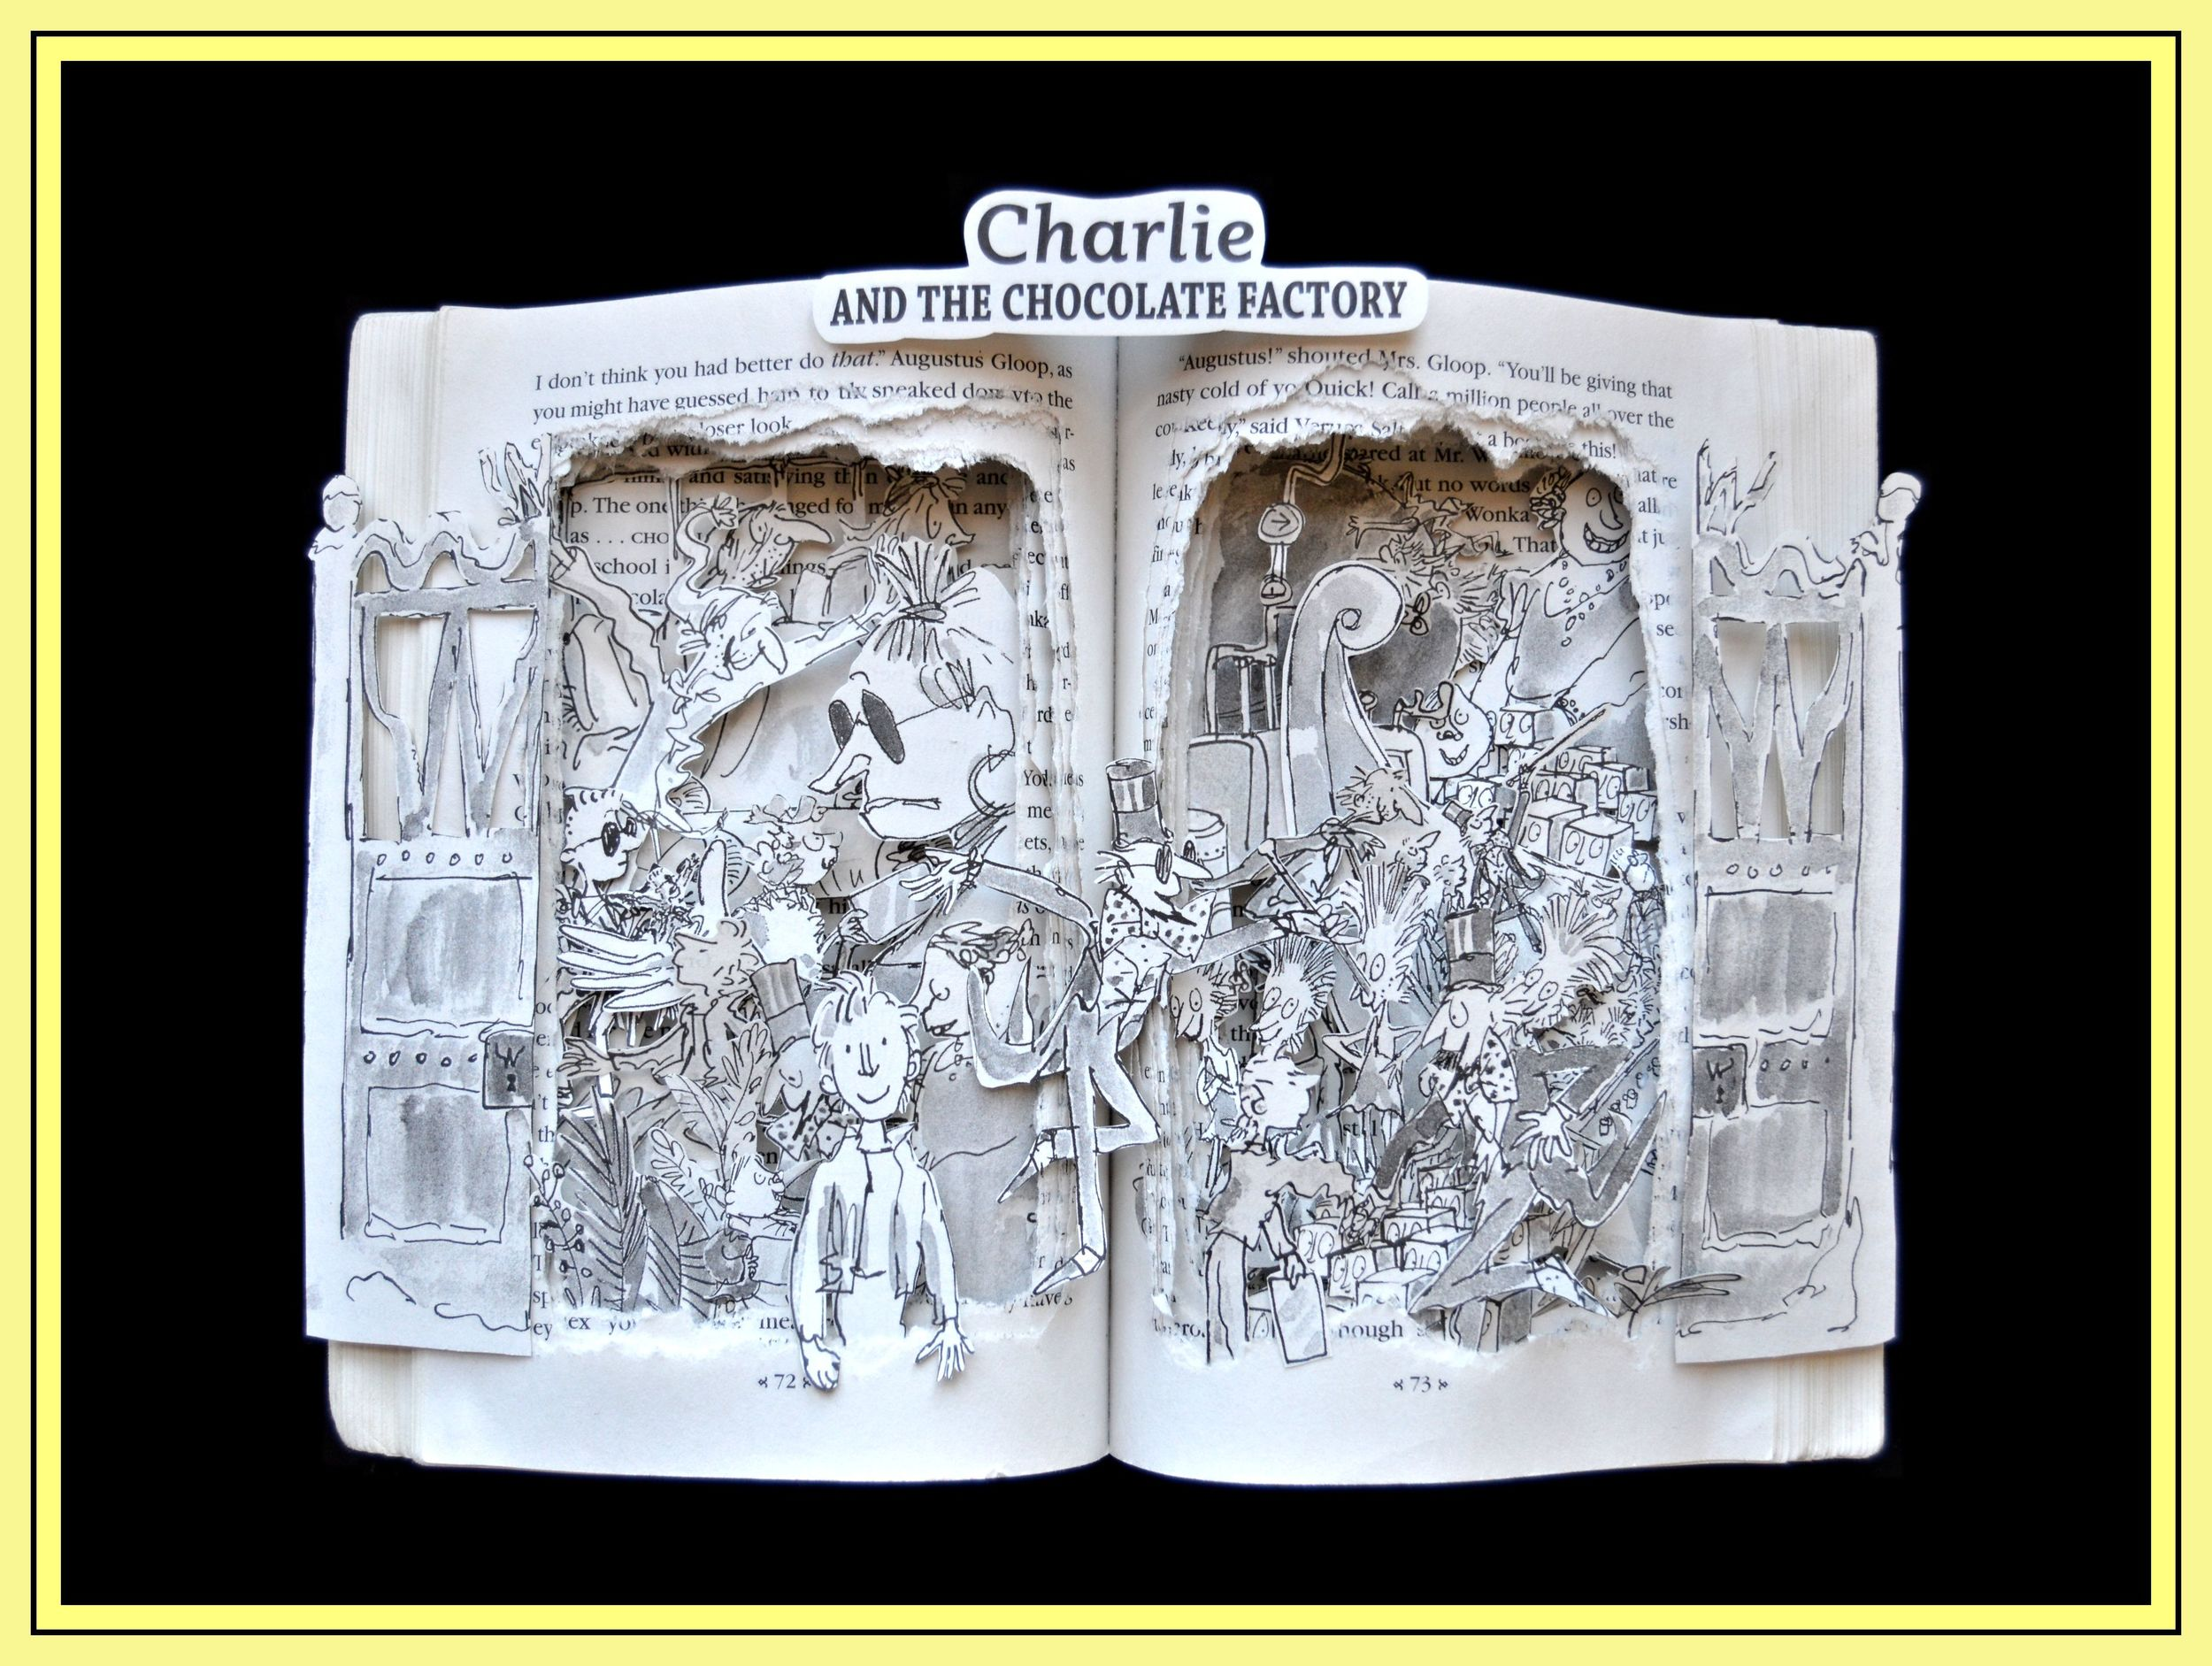 Charlie and The Chocolate Factory - 12x16x3 Book Sculpture